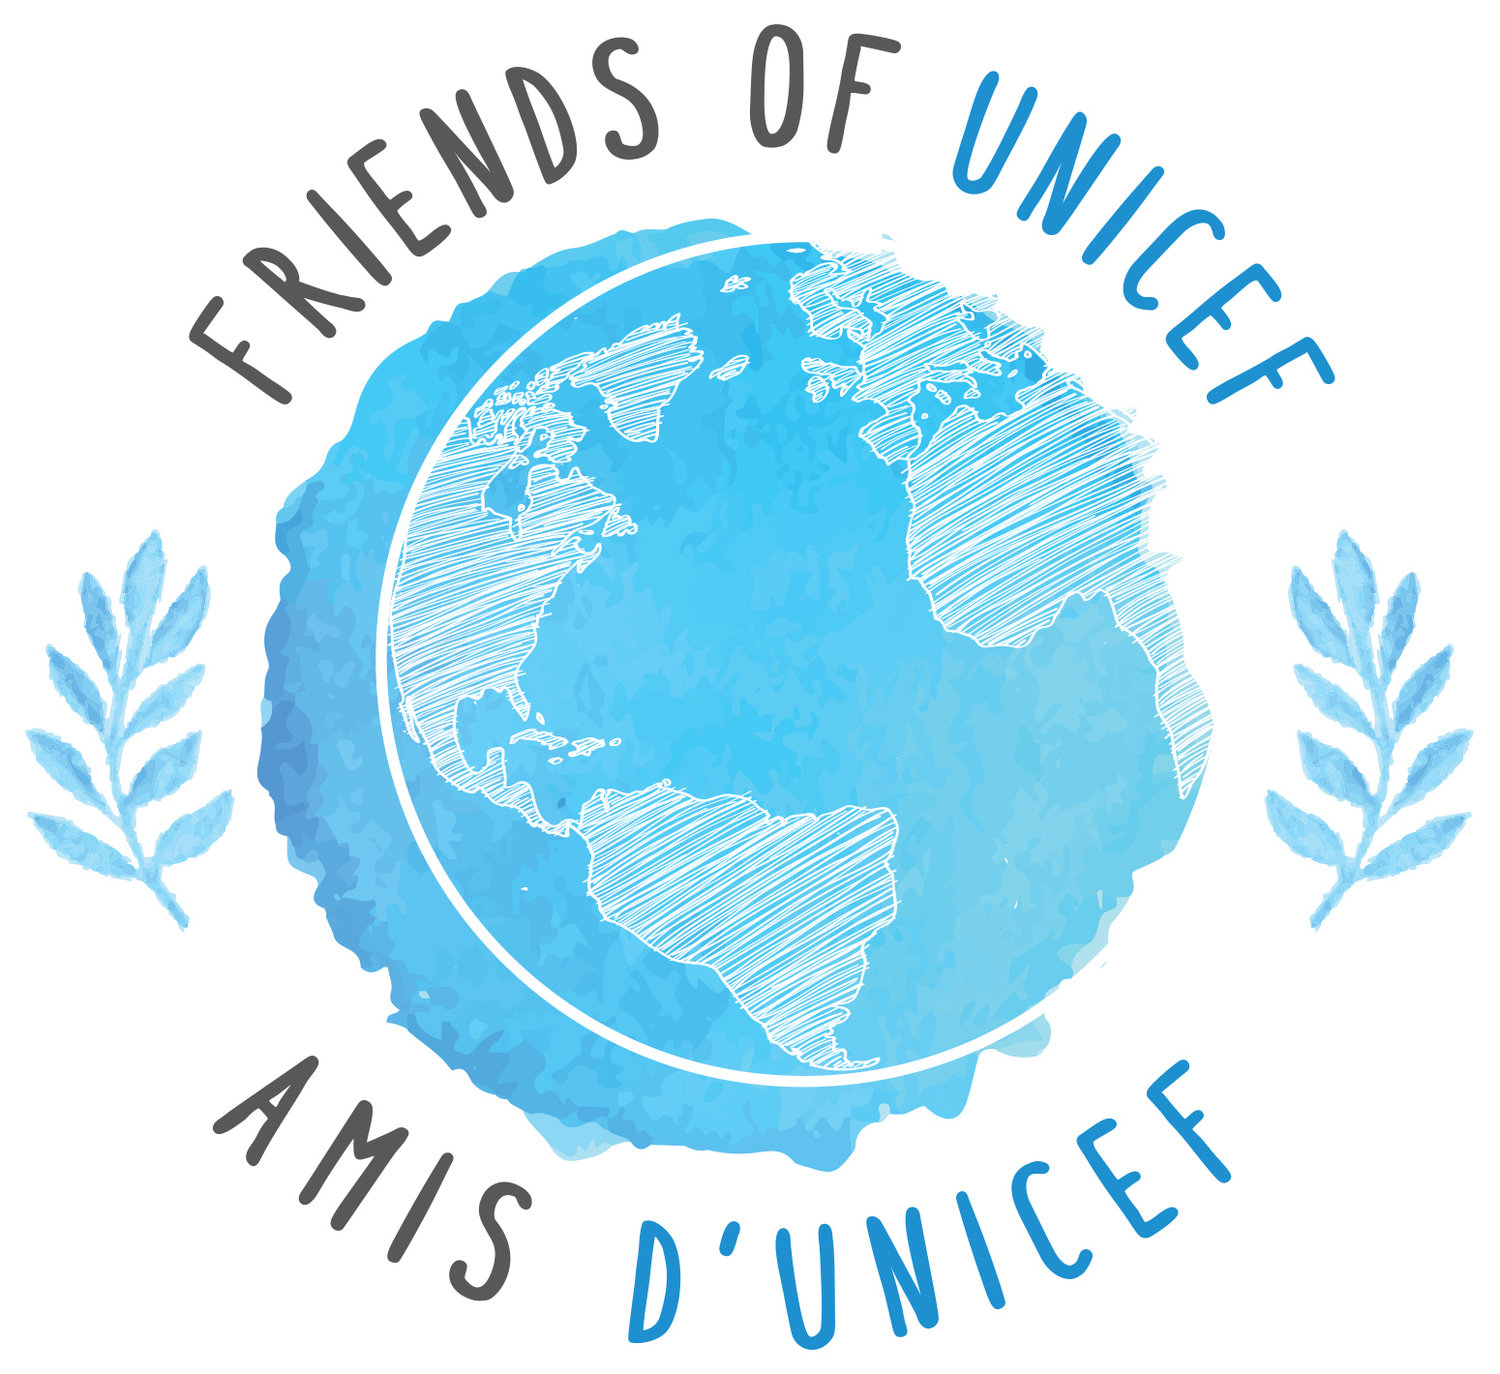 Friends of Unicef / Amis d'Unicef